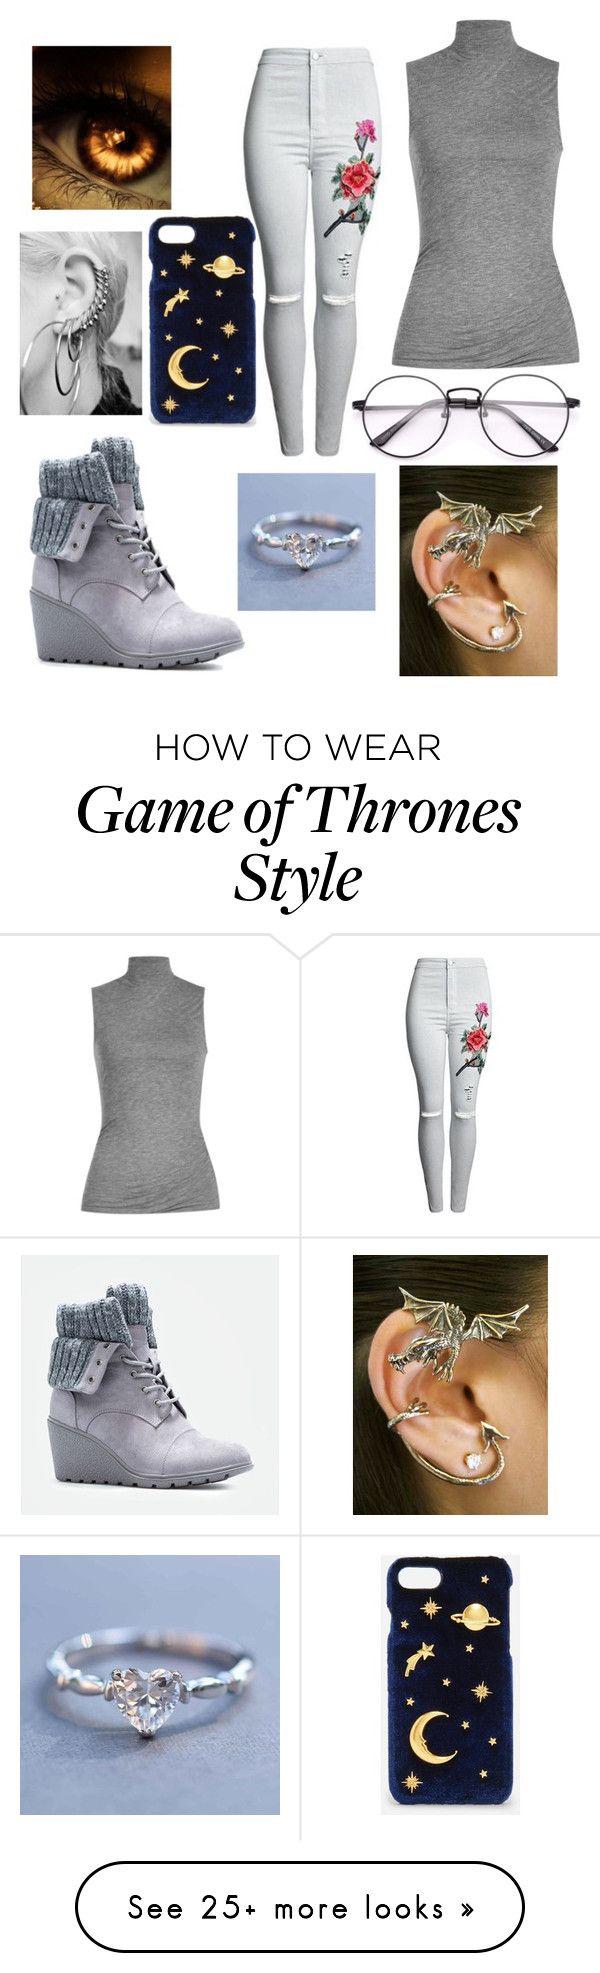 """""""Reimagining"""" by the-wayward-huntress on Polyvore featuring Velvet, JustFab and CHARLES & KEITH"""